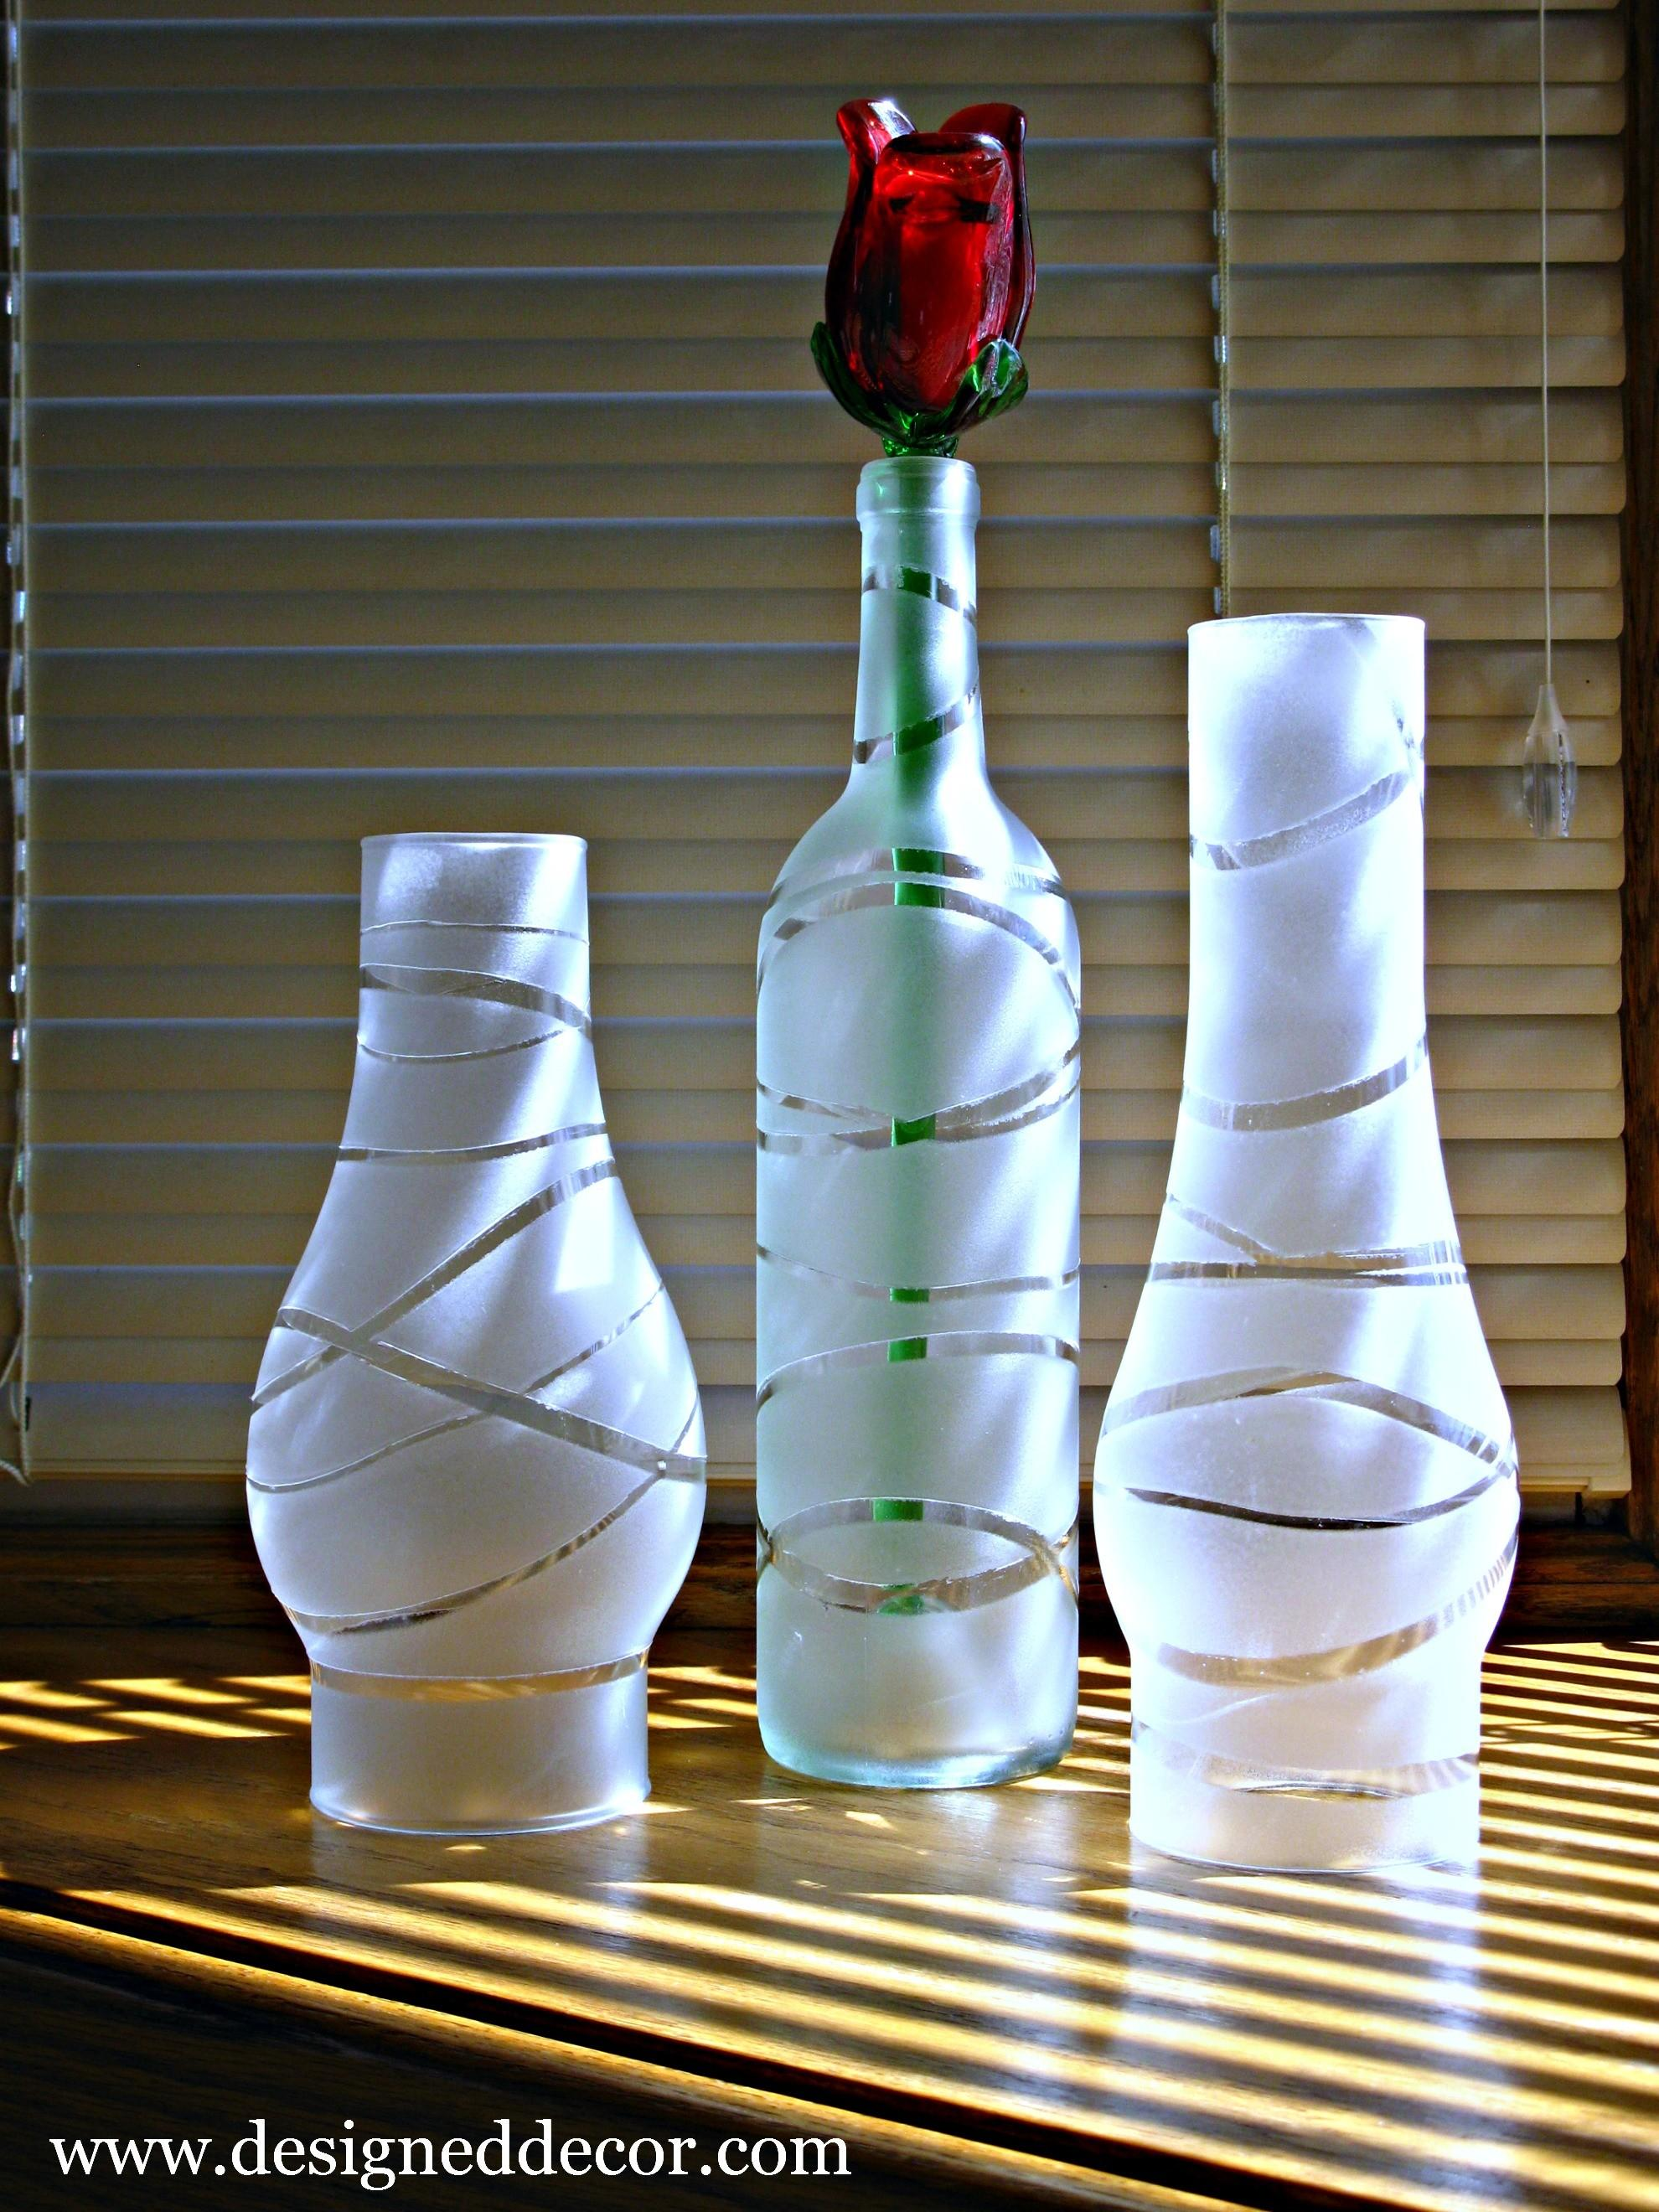 Diy Painted Jars Bottles Designed Decor